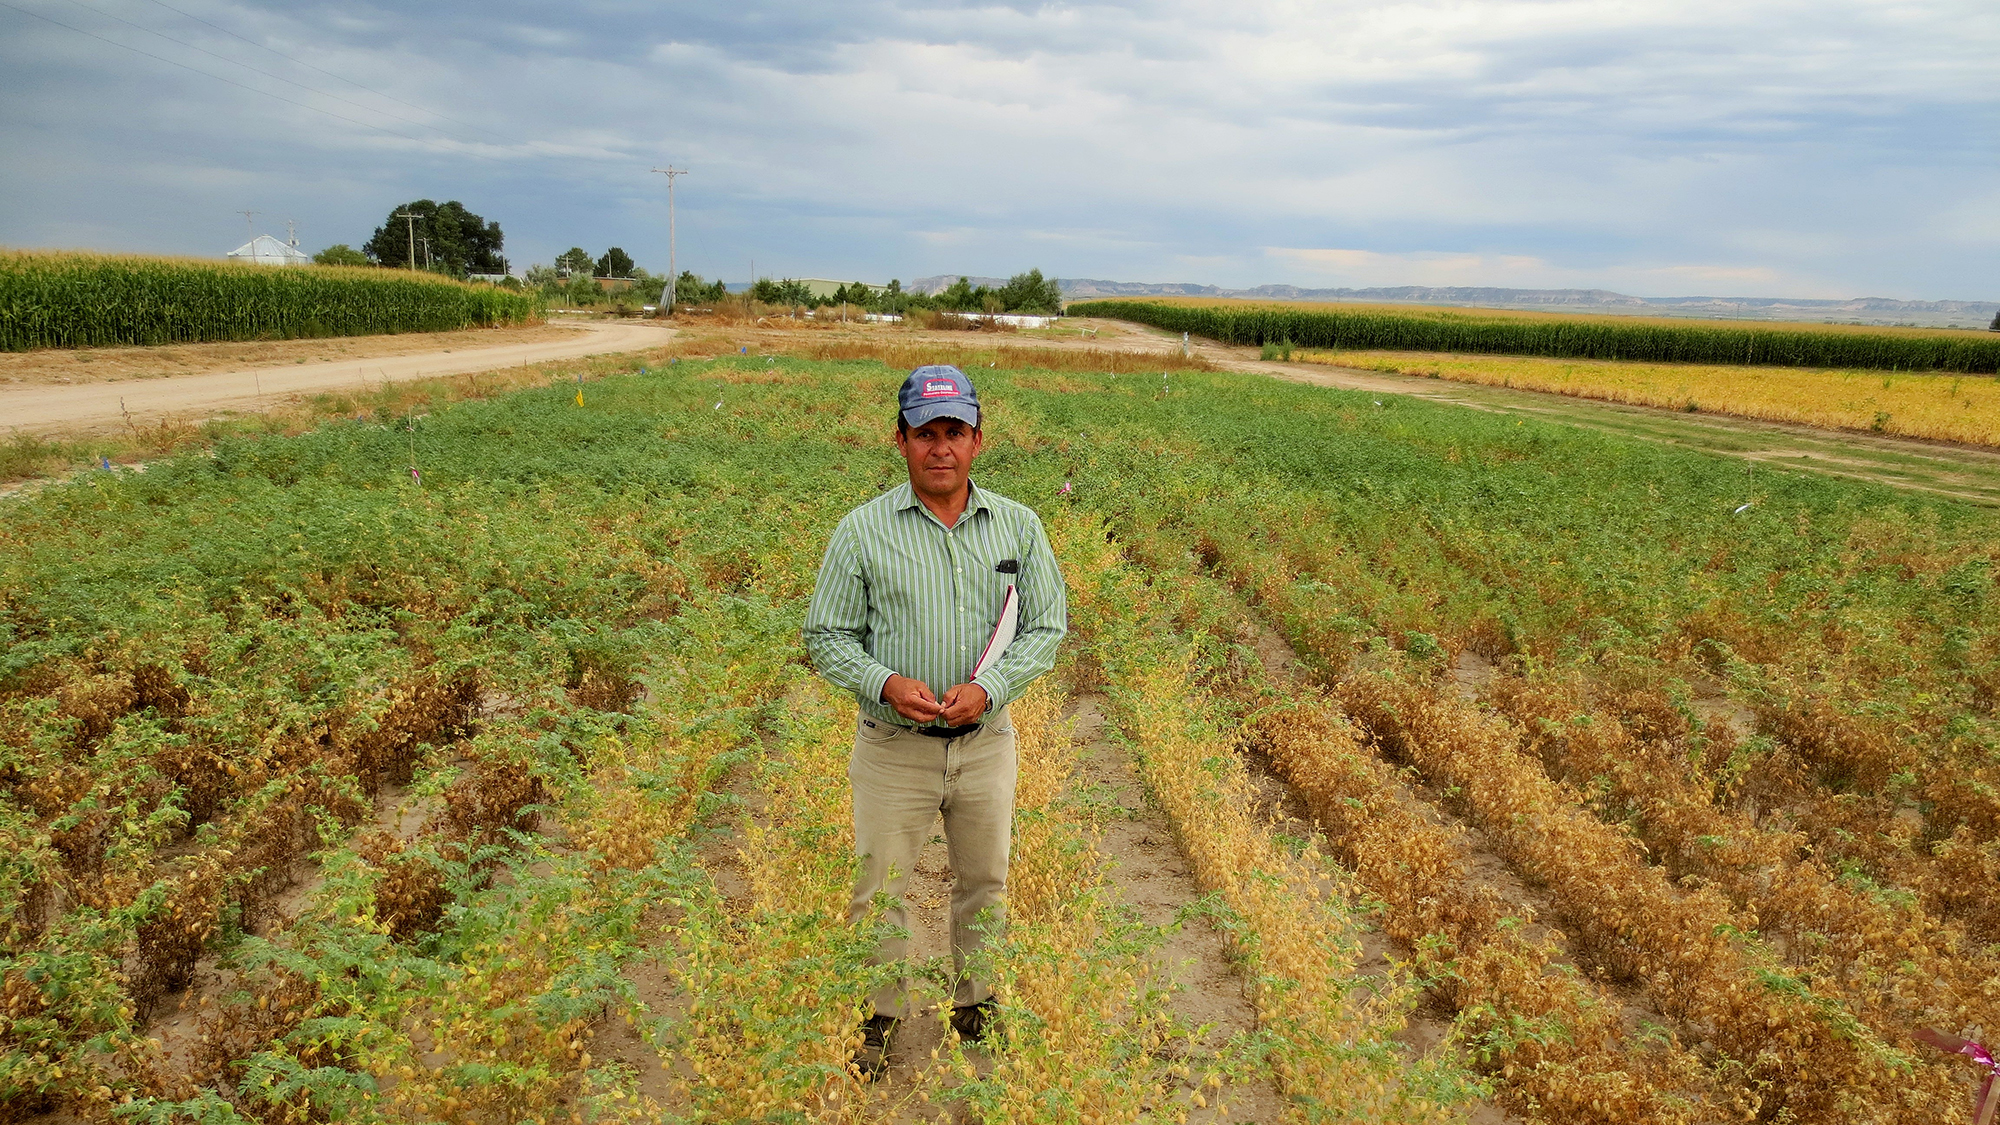 Carlos Urrea in a field of New Hope chickpeas